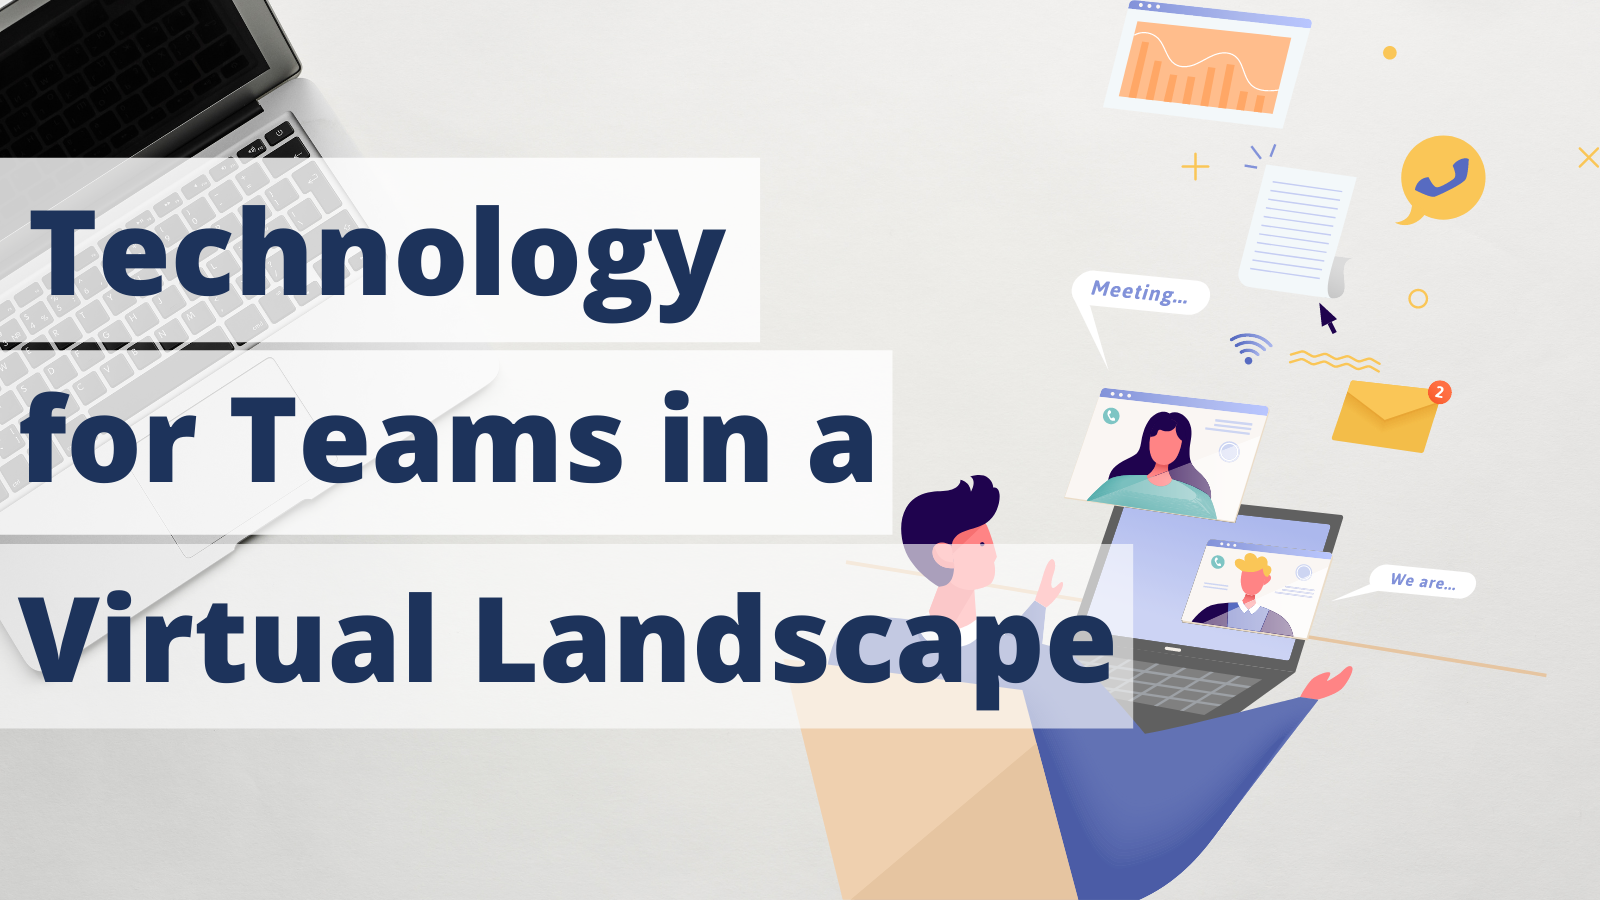 Technology for Teams in a Virtual Landscape